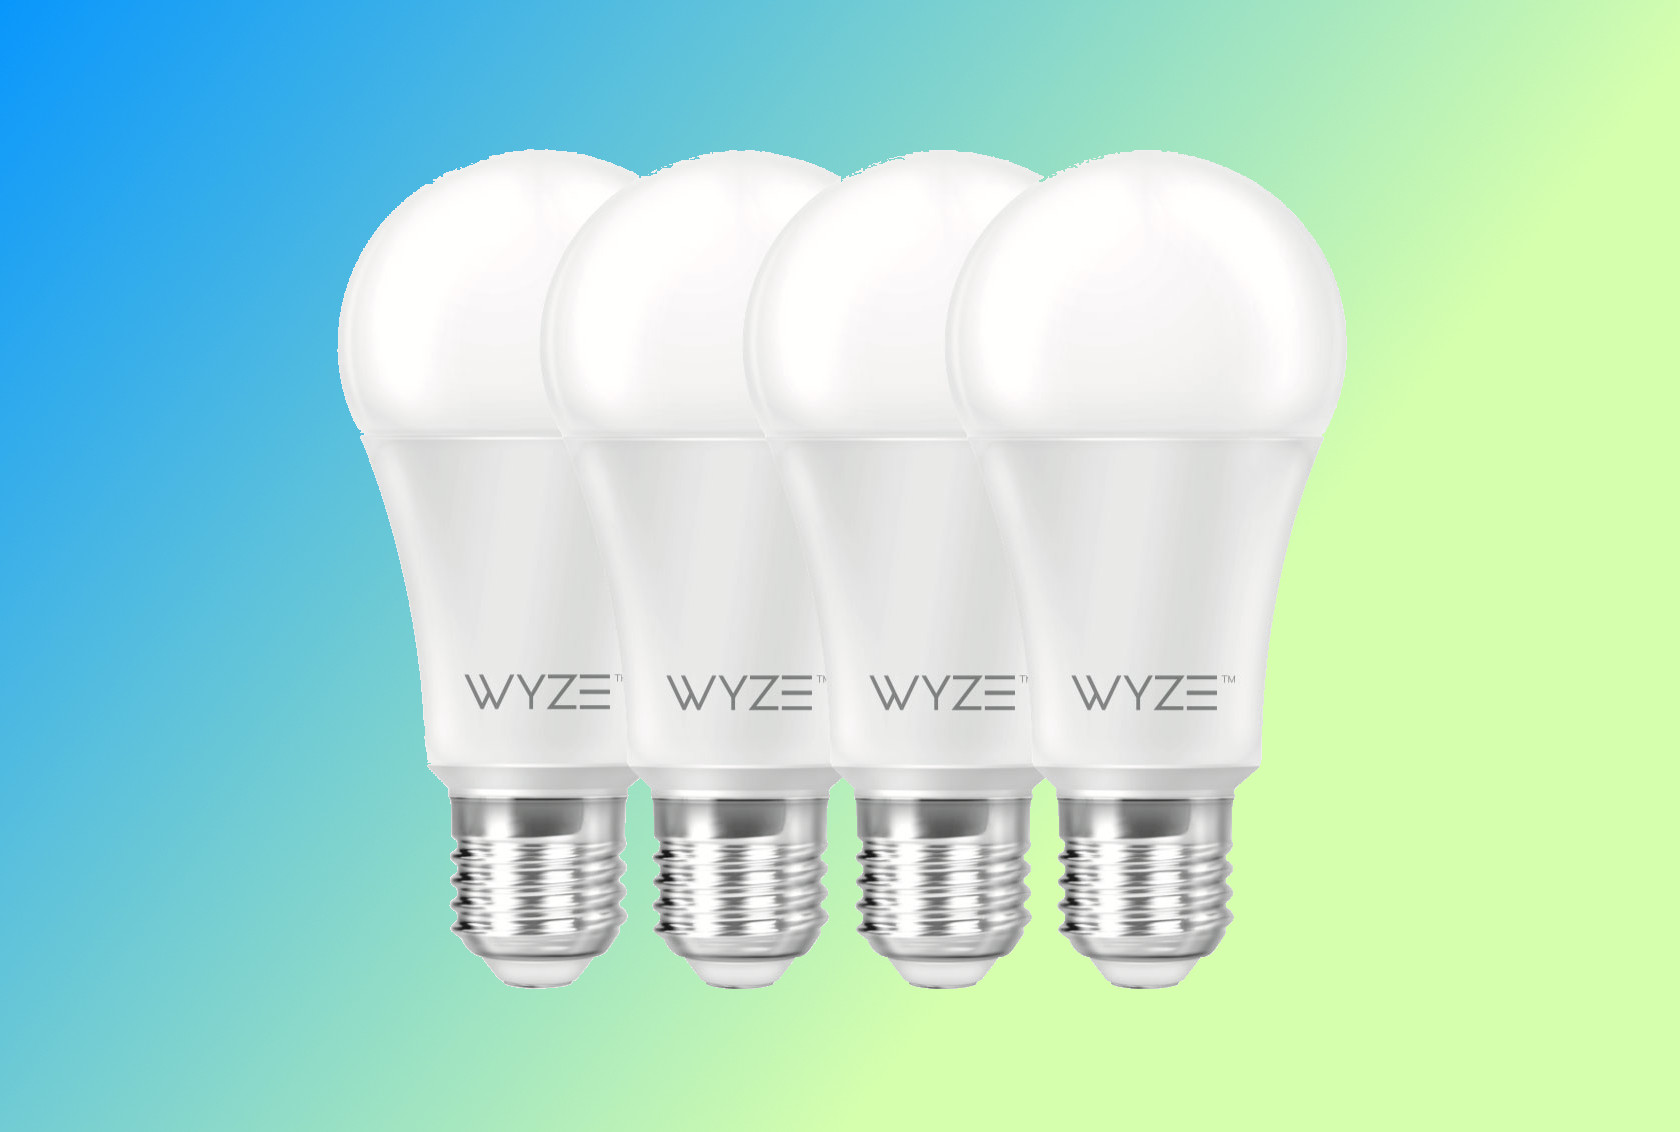 Wyze Bulb is an $8 bomb in the smart lighting market - SlashGear